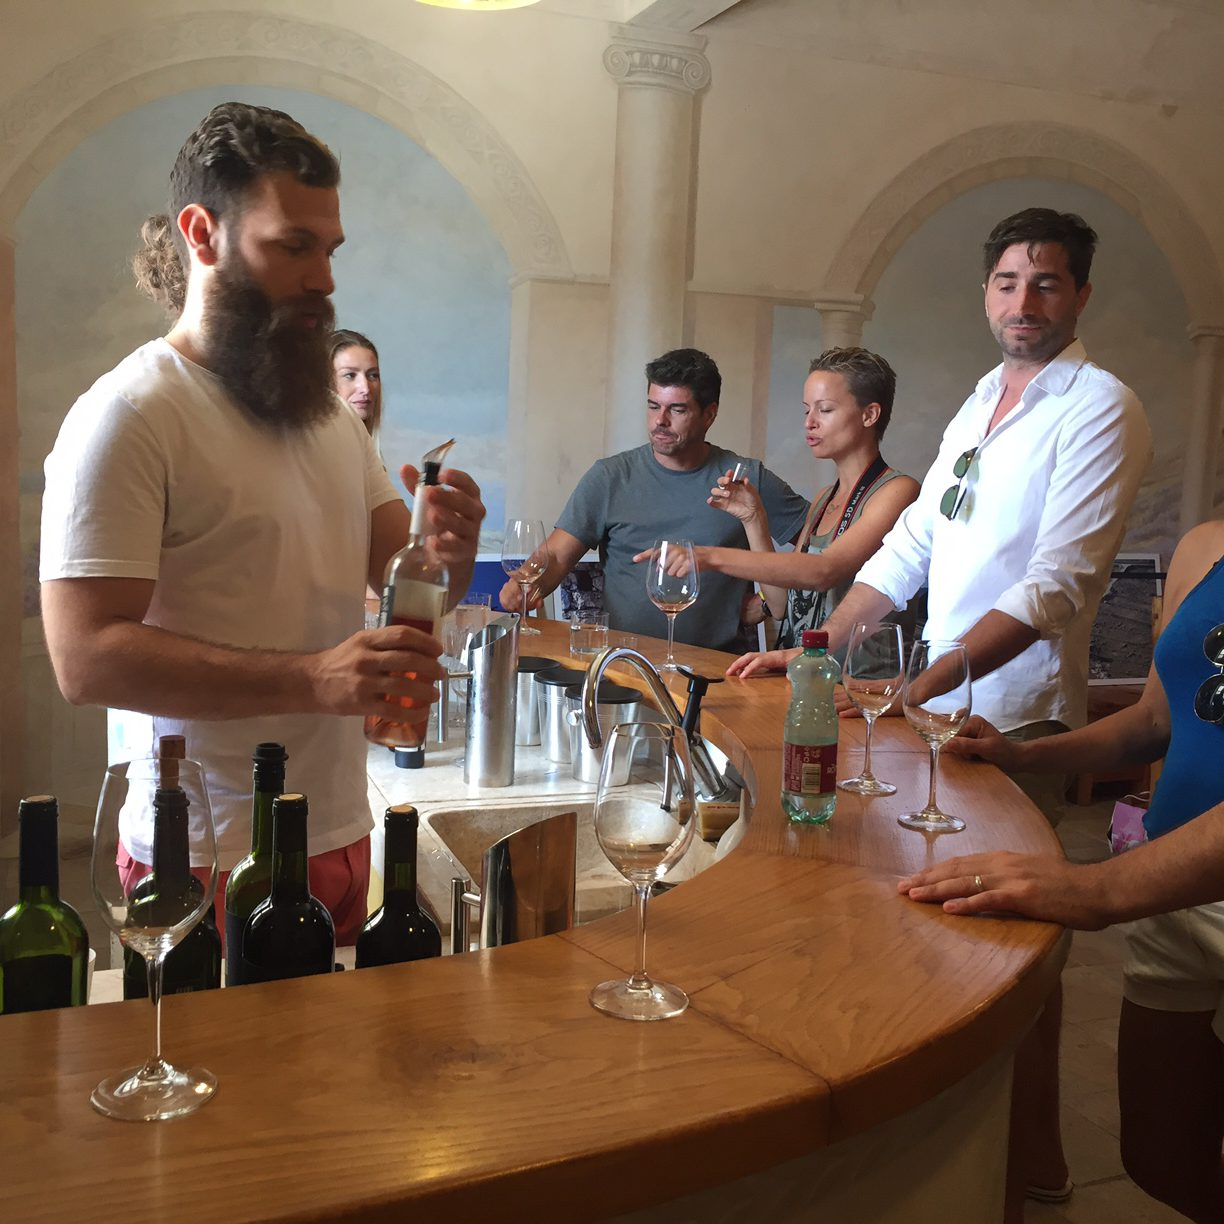 IMG 4836 e1503393718291 - Organic by Nature: The re-emergence of Croatia's wine industry